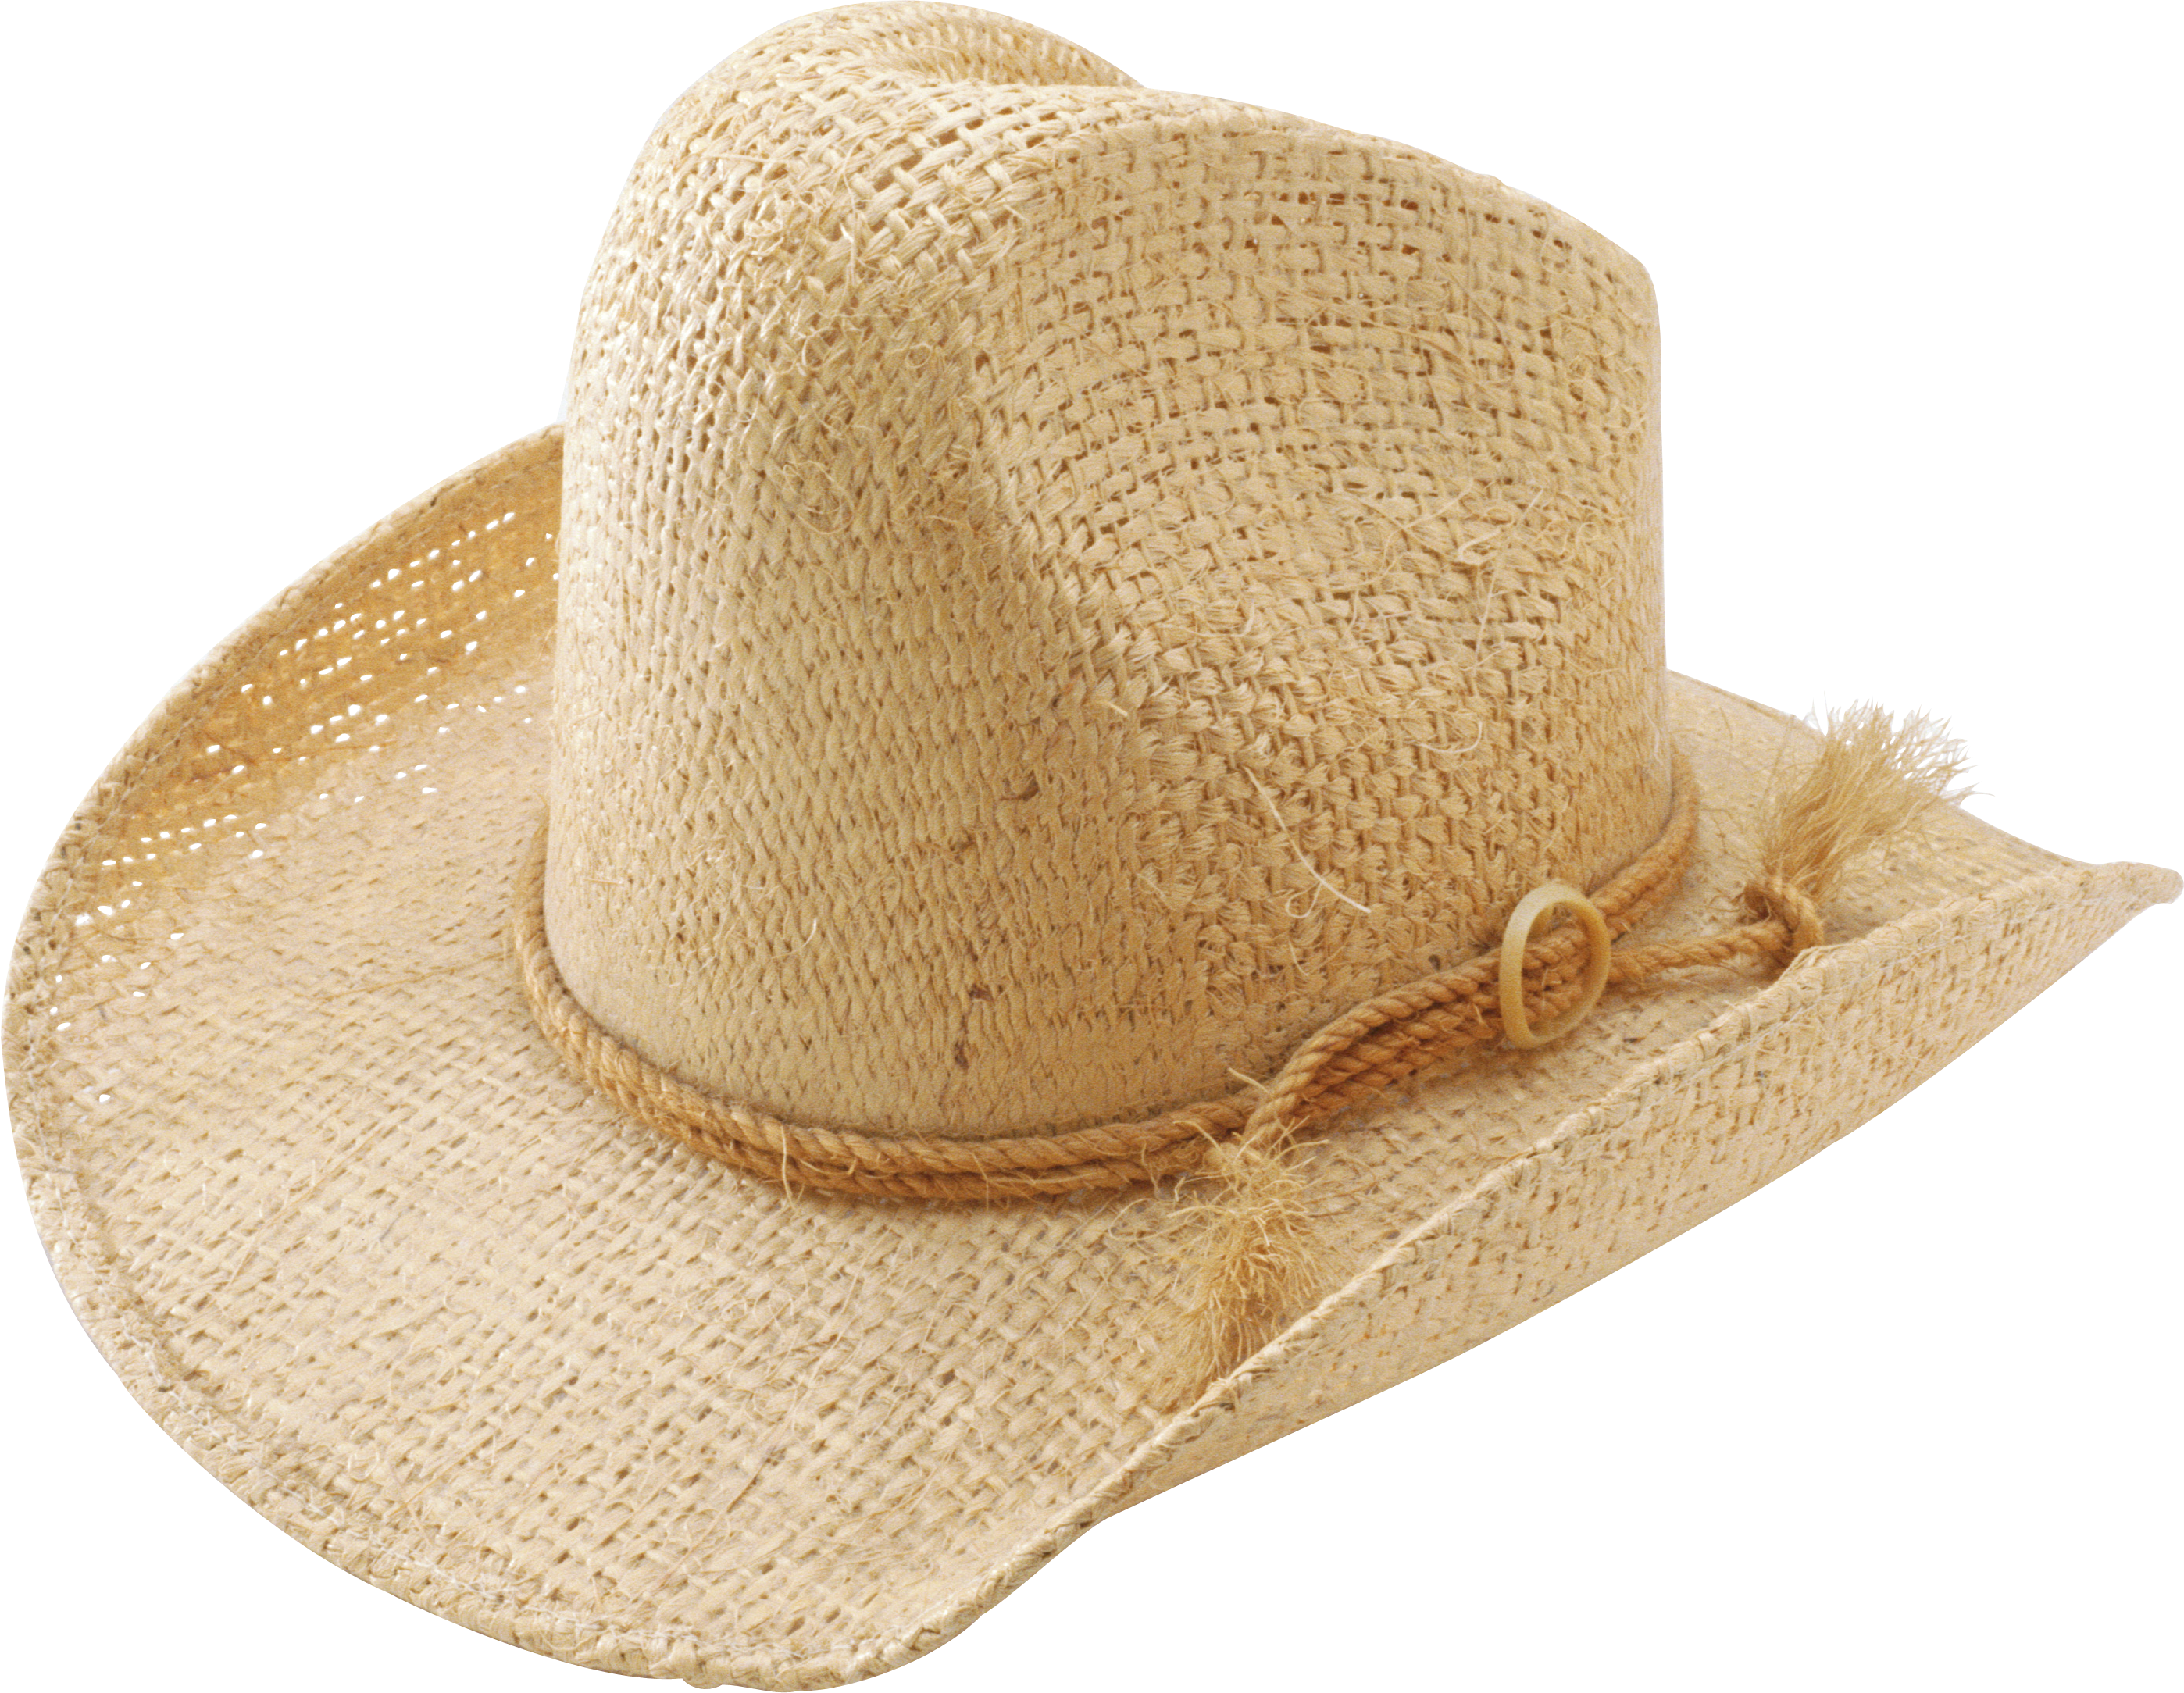 Brown Cow Boy's Hat PNG Image